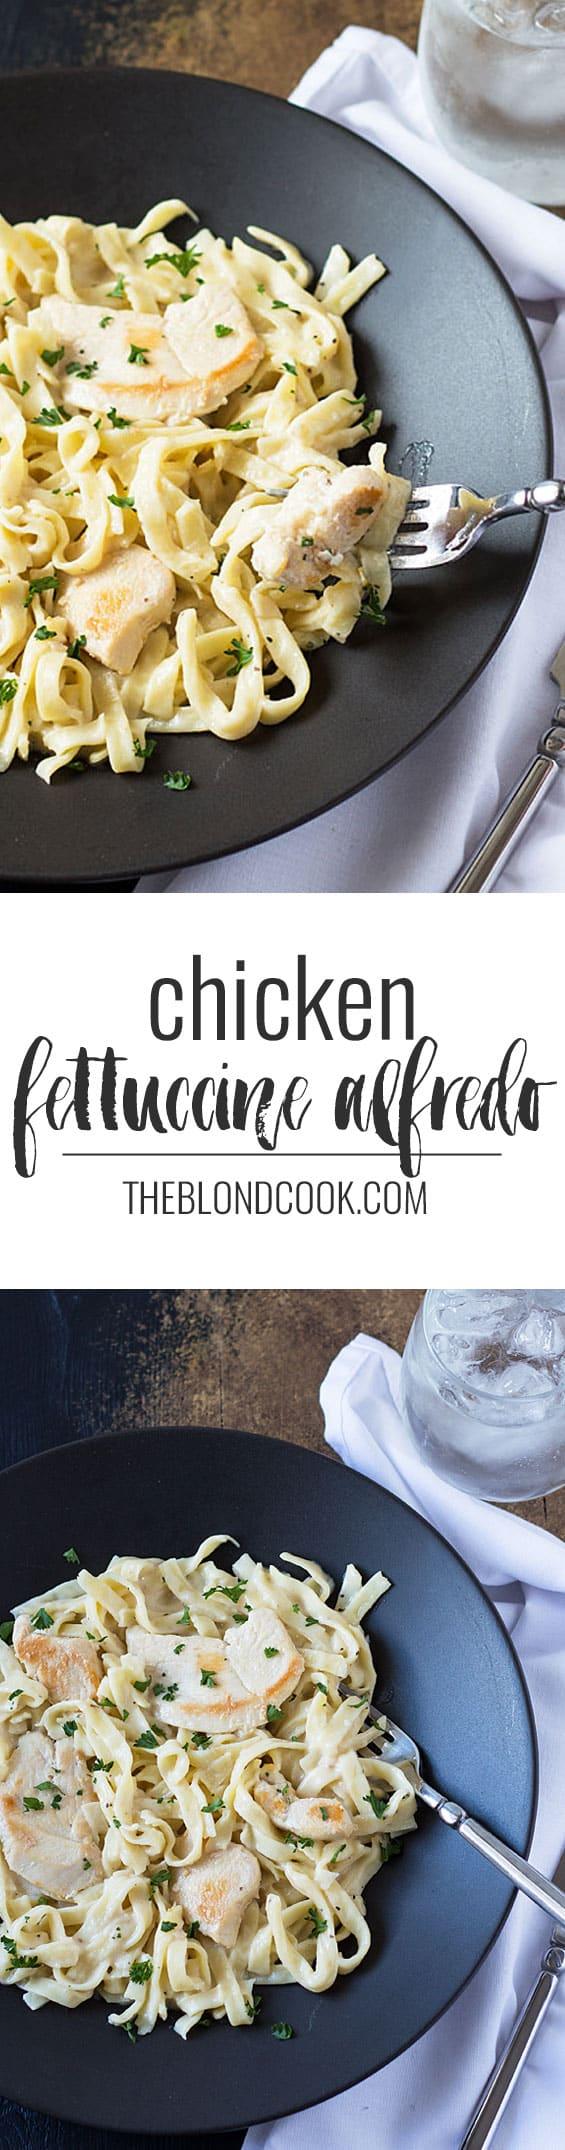 Creamy Chicken Fettuccine Alfredo - A quick and delicious meal in one skillet with the help of Tyson Meal Kits!